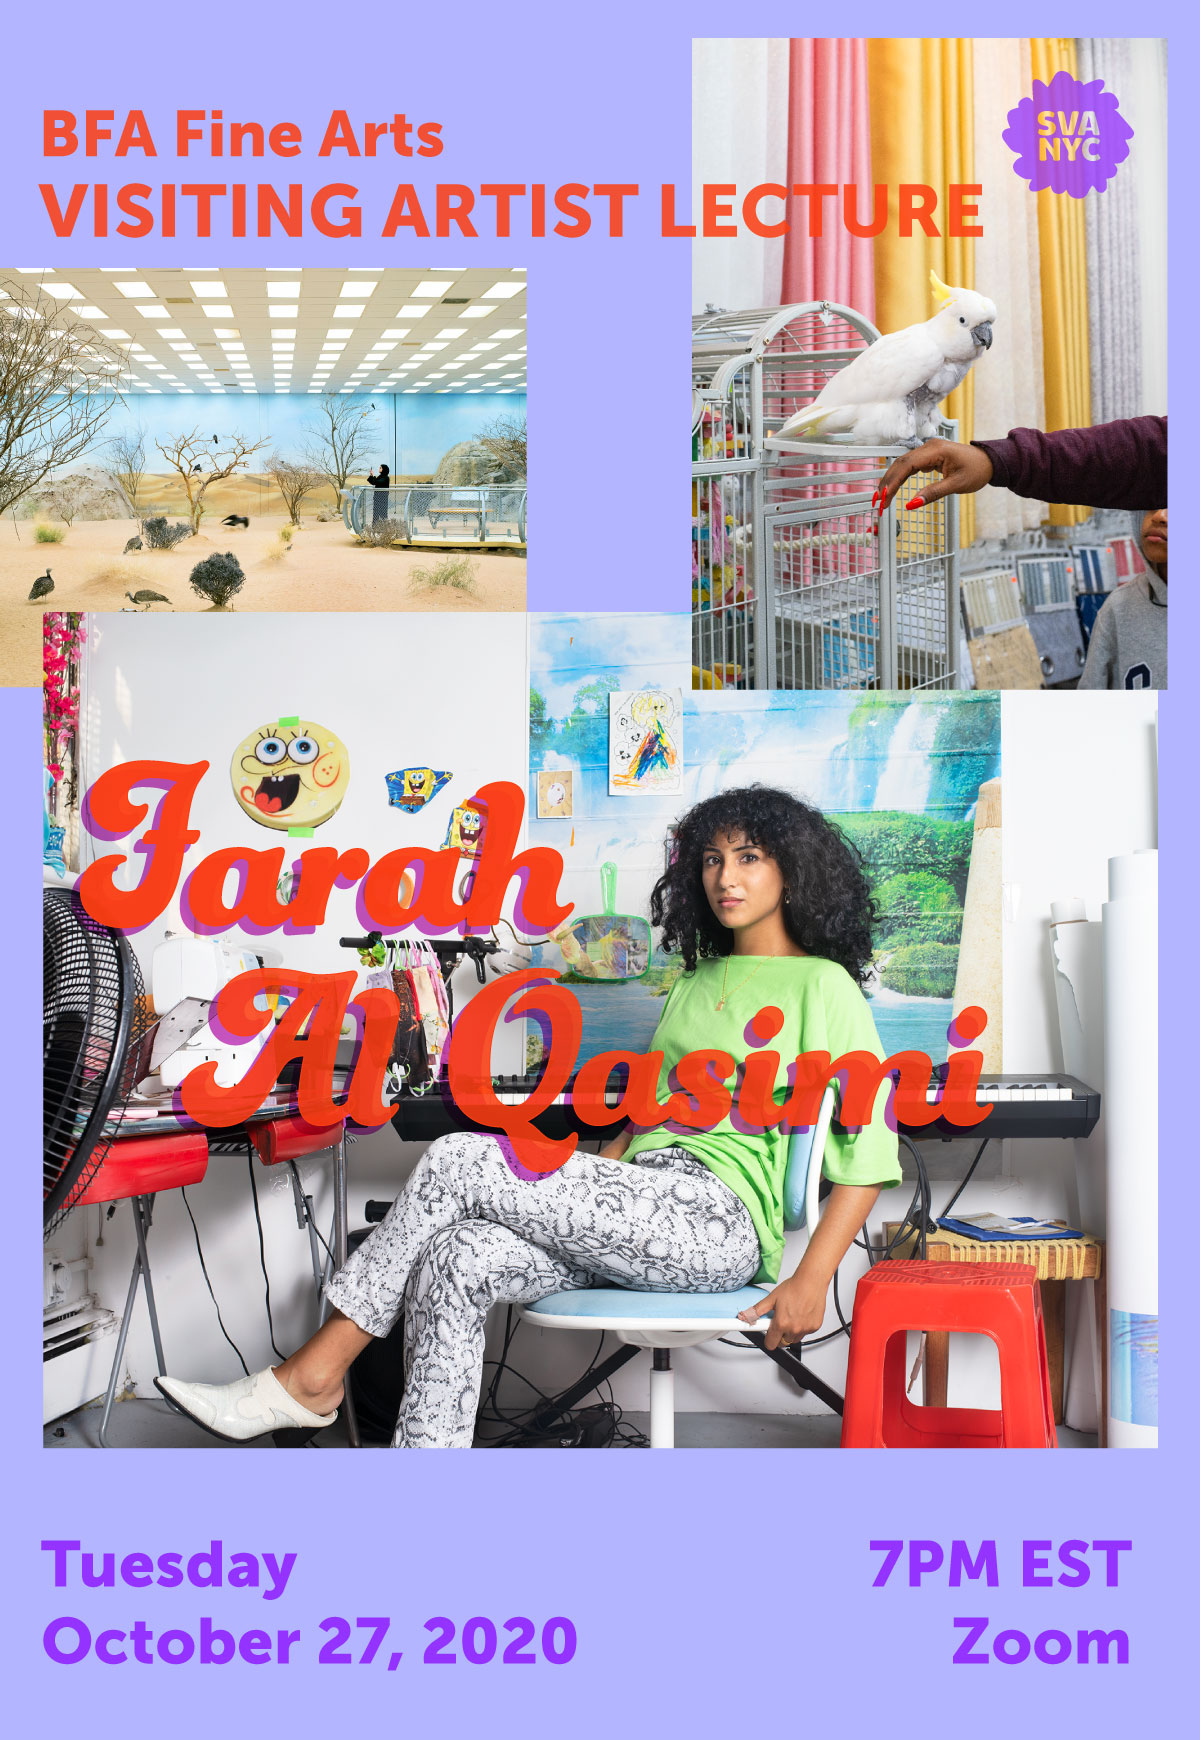 A poster for a visiting artist lecture with Farah Al Qasimi at the School of Visual Arts on Tuesday, November 3, 2020 at 7pm EST. This lecture will be held online on Zoom.